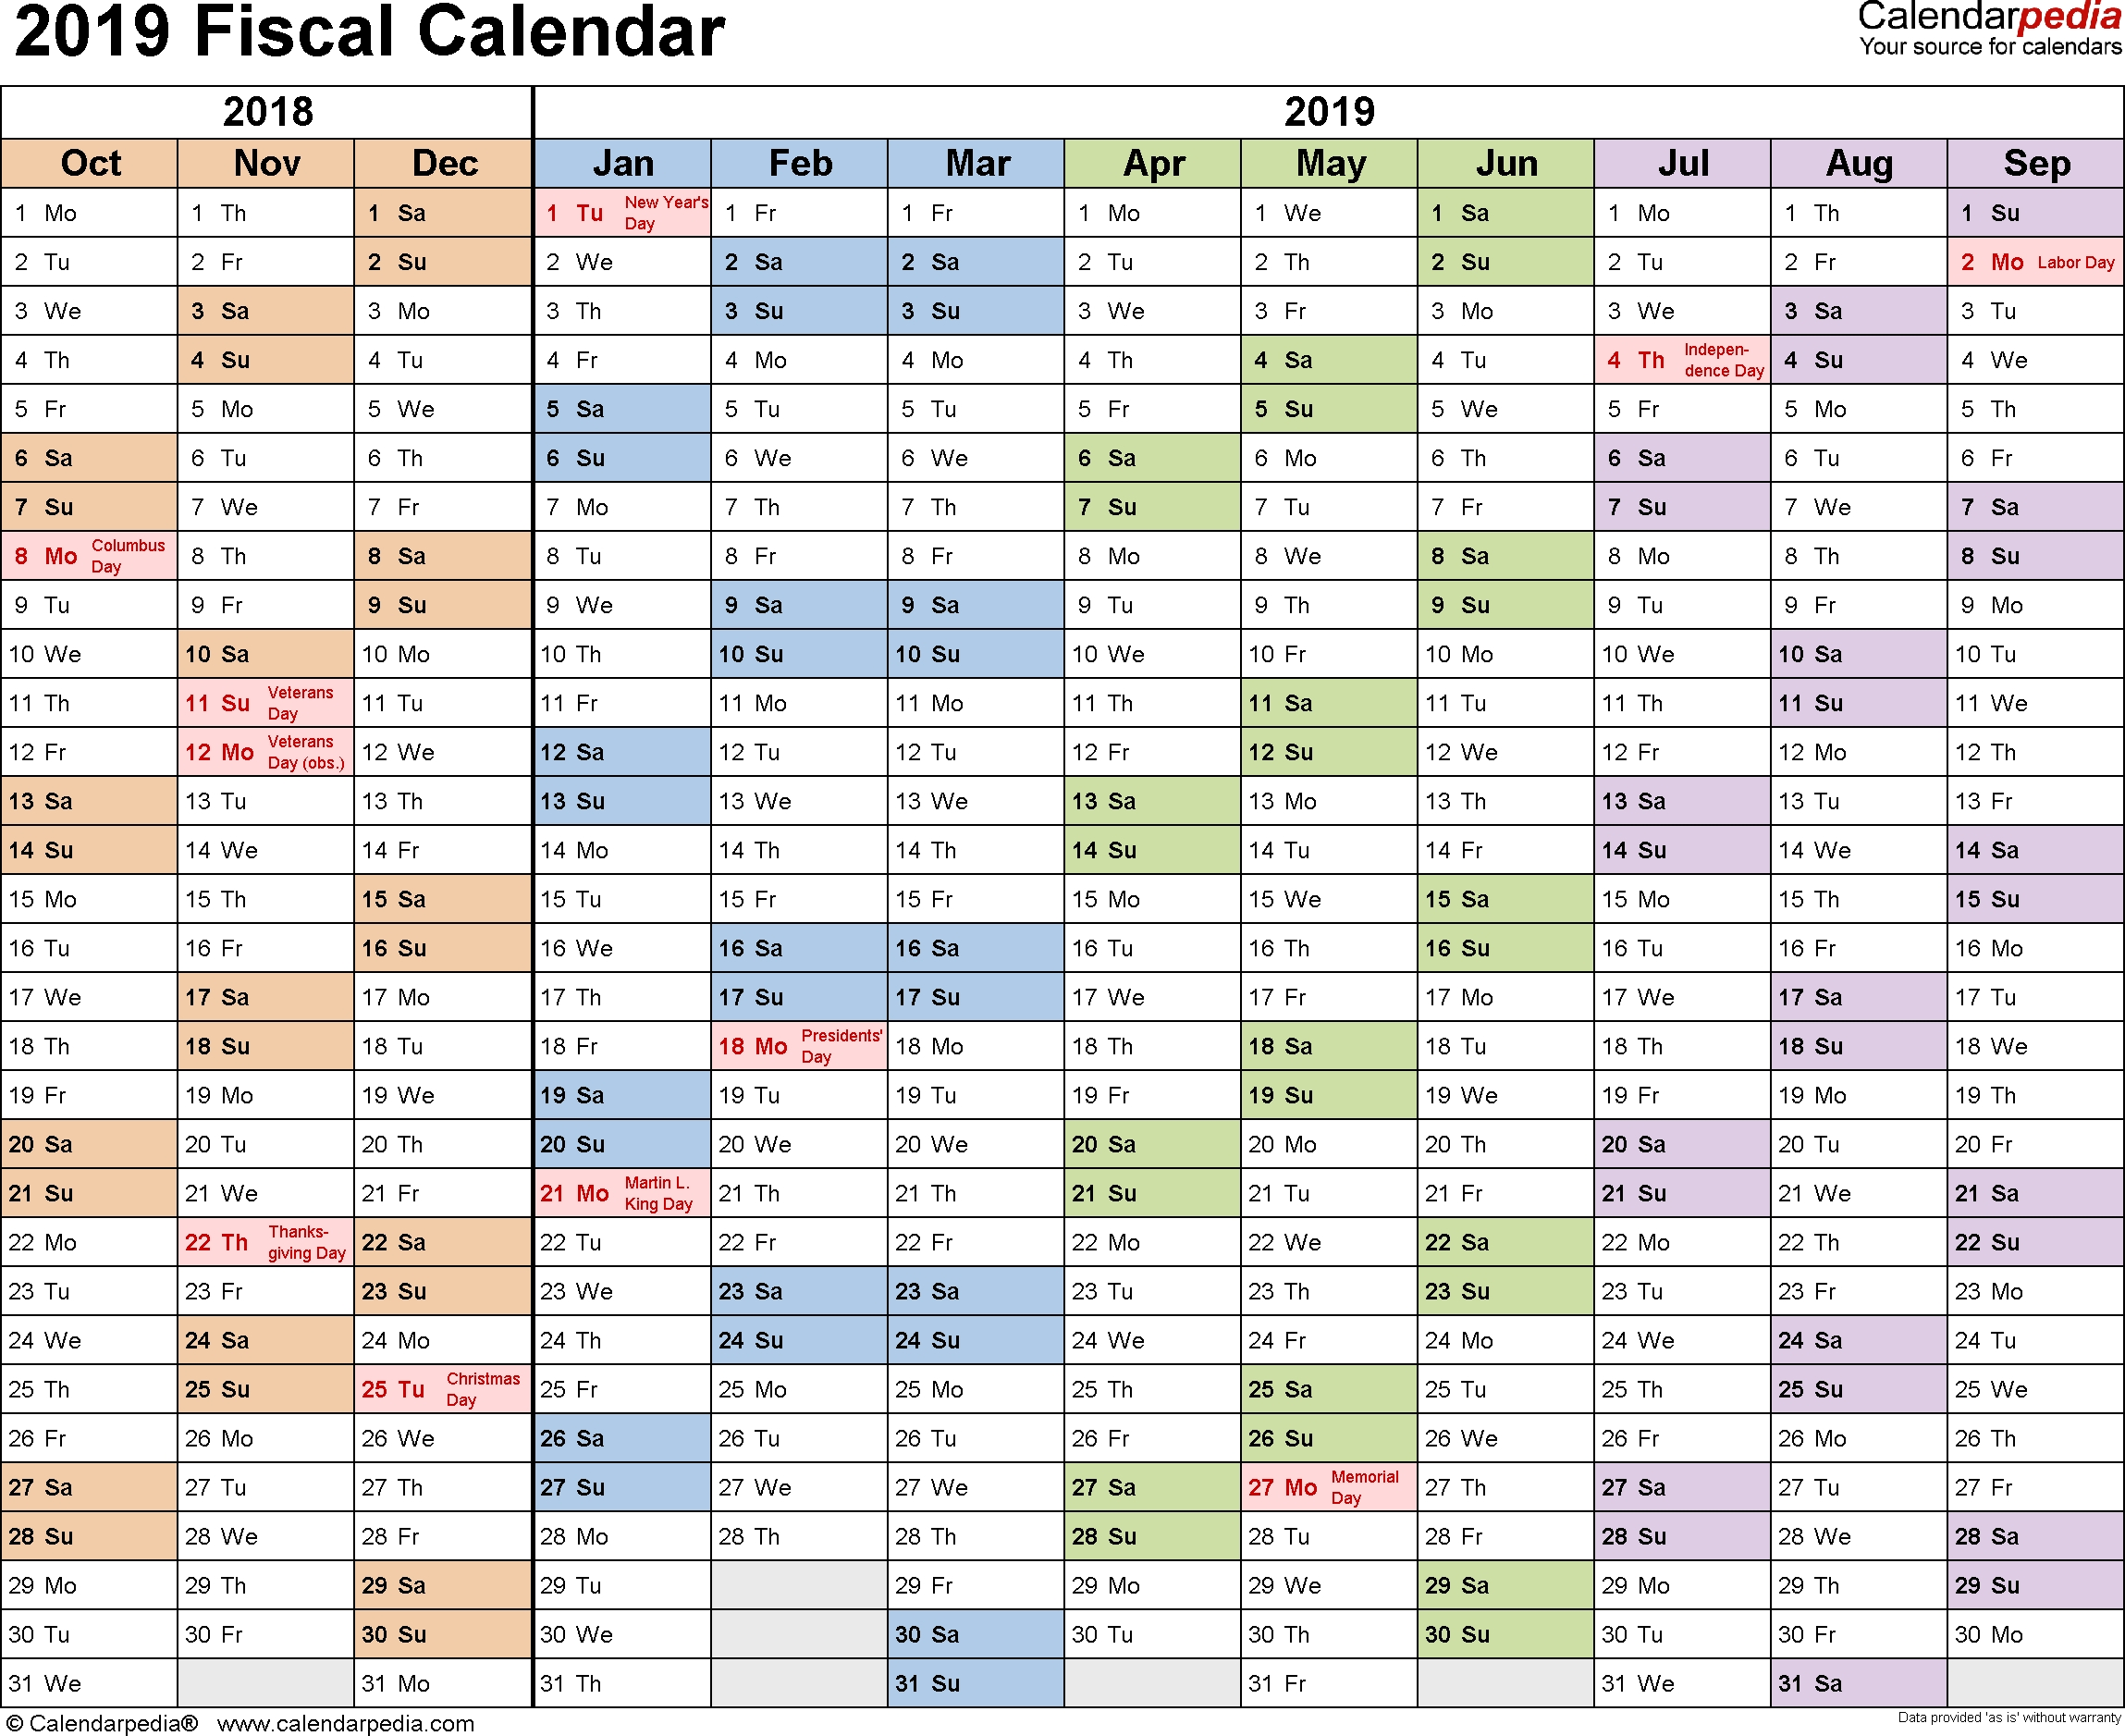 Fiscal Calendars 2019 As Free Printable Word Templates  Australian Financial Year Dates